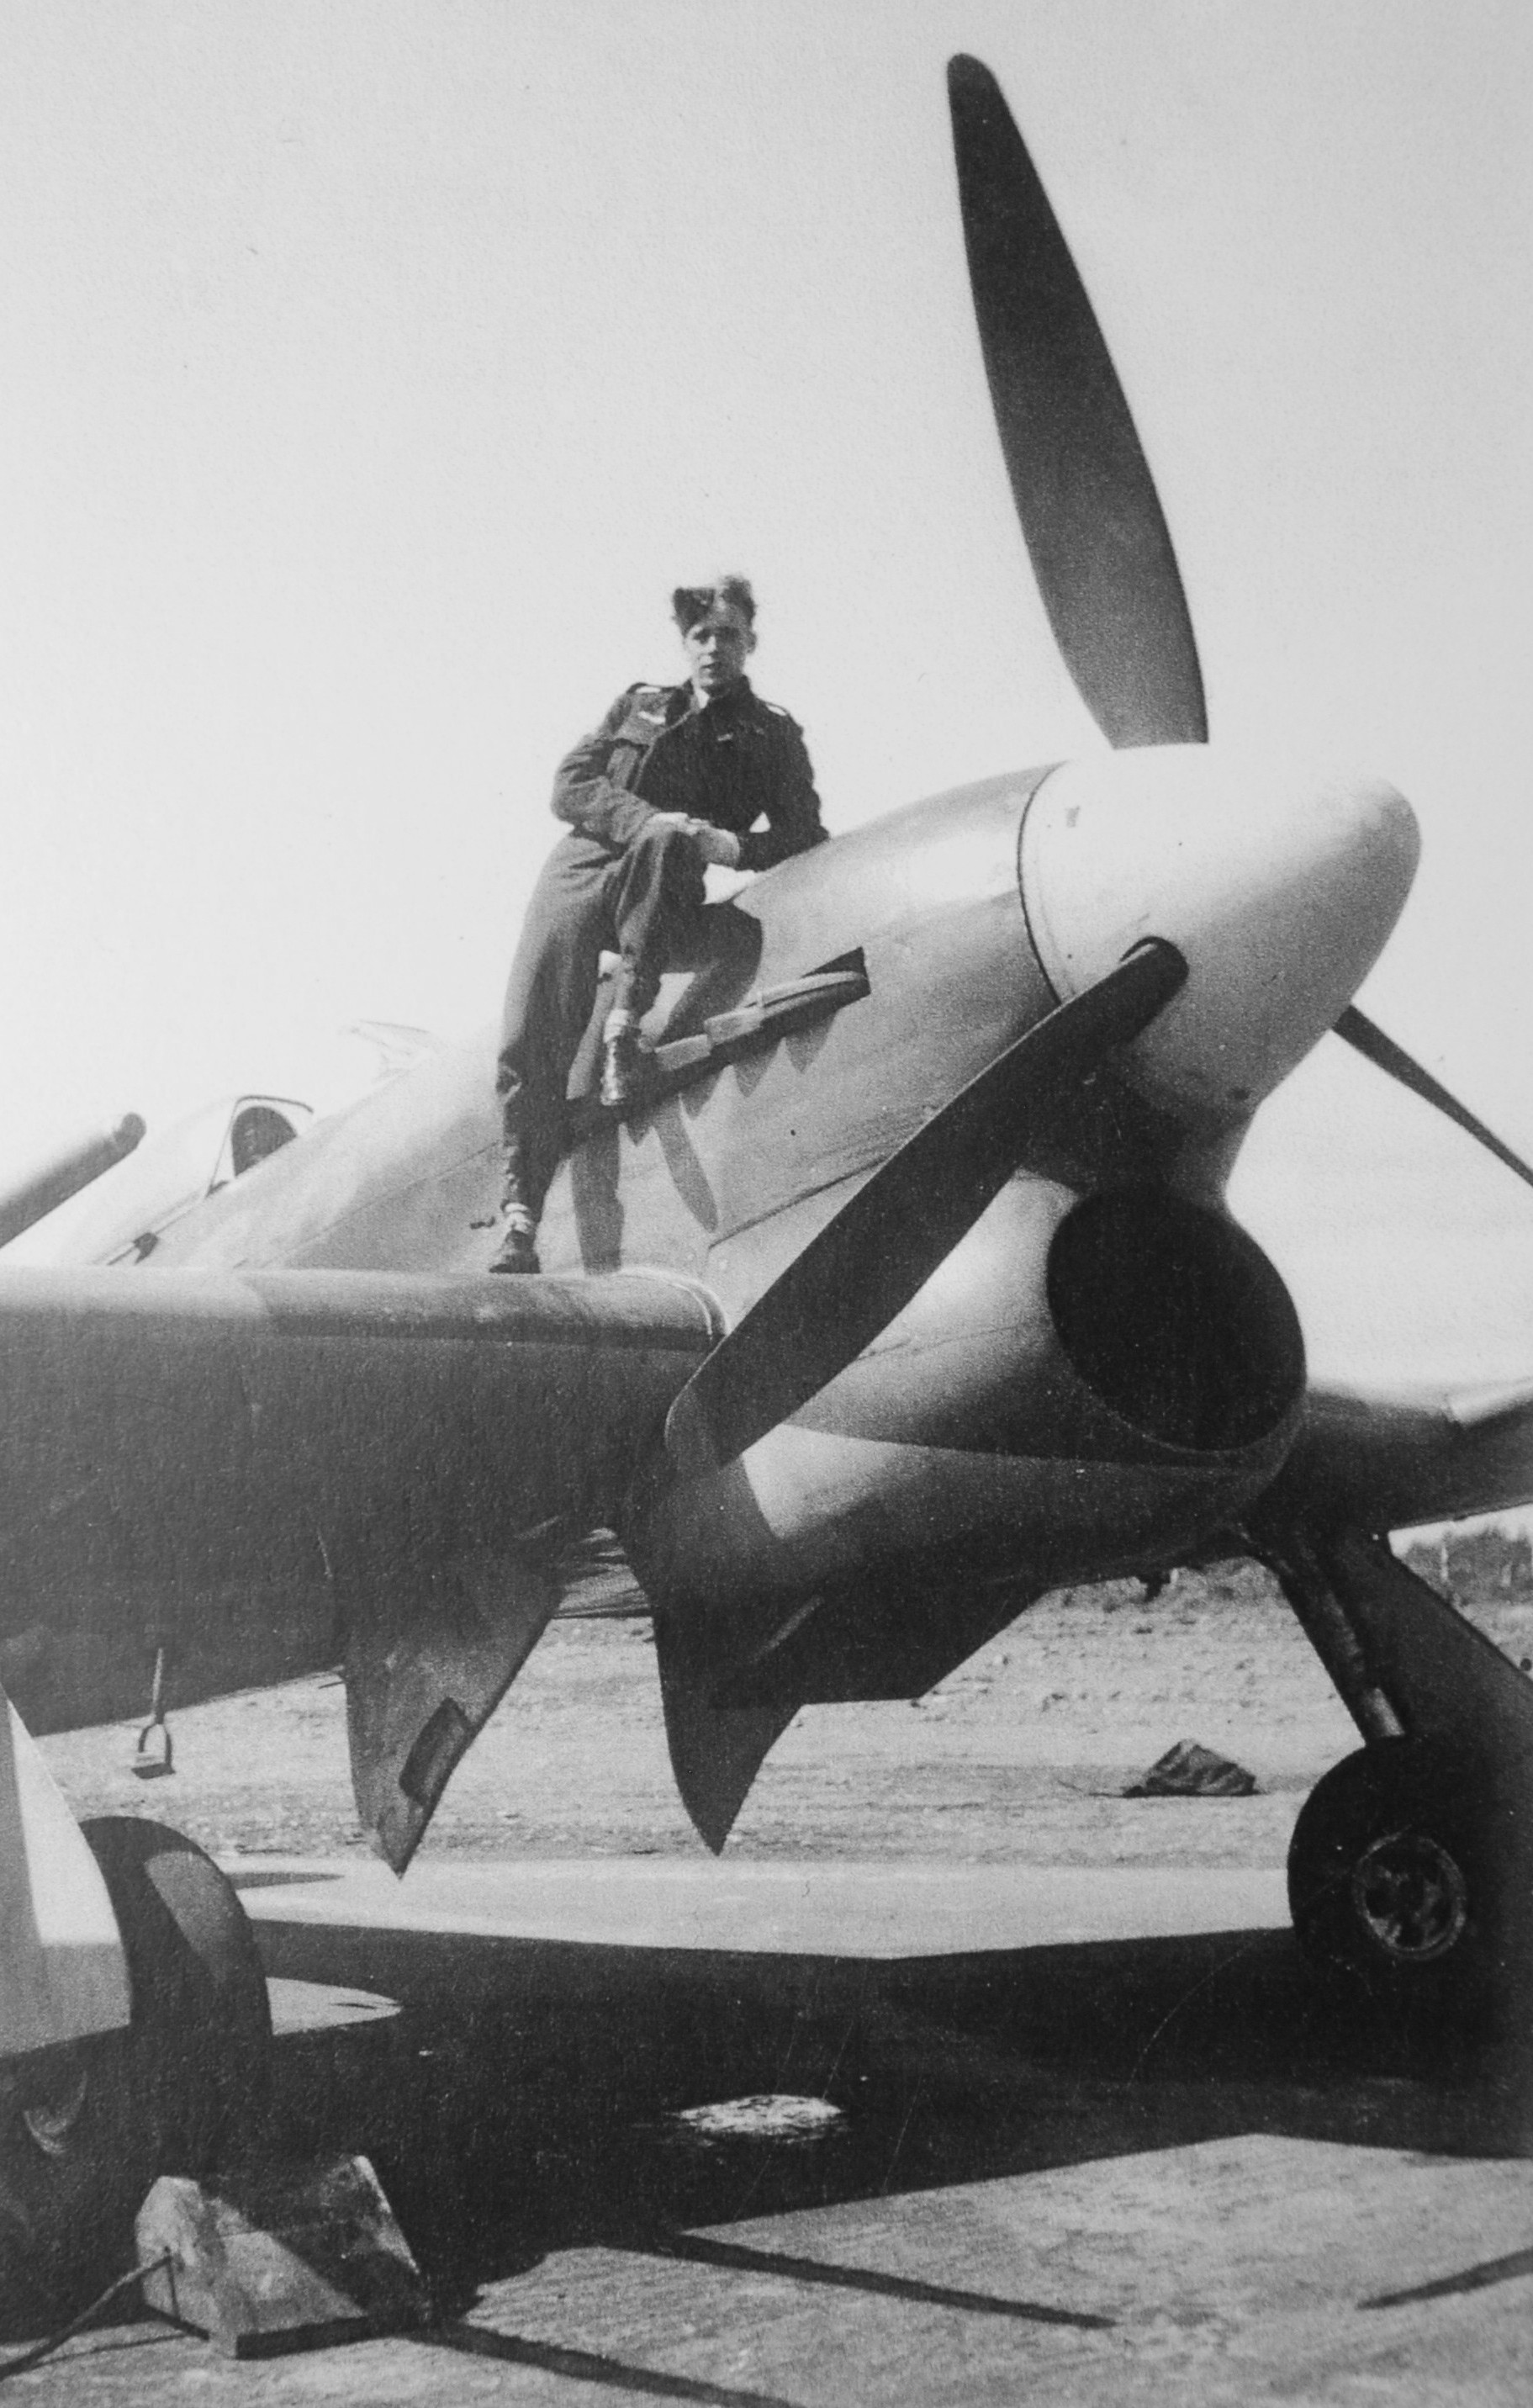 Flight Lieutenant John Colton perches on his Hawker Typhoon in Manston, England, in July 1944. PHOTO: Courtesy Flight Lieutenant (retired) John Colton